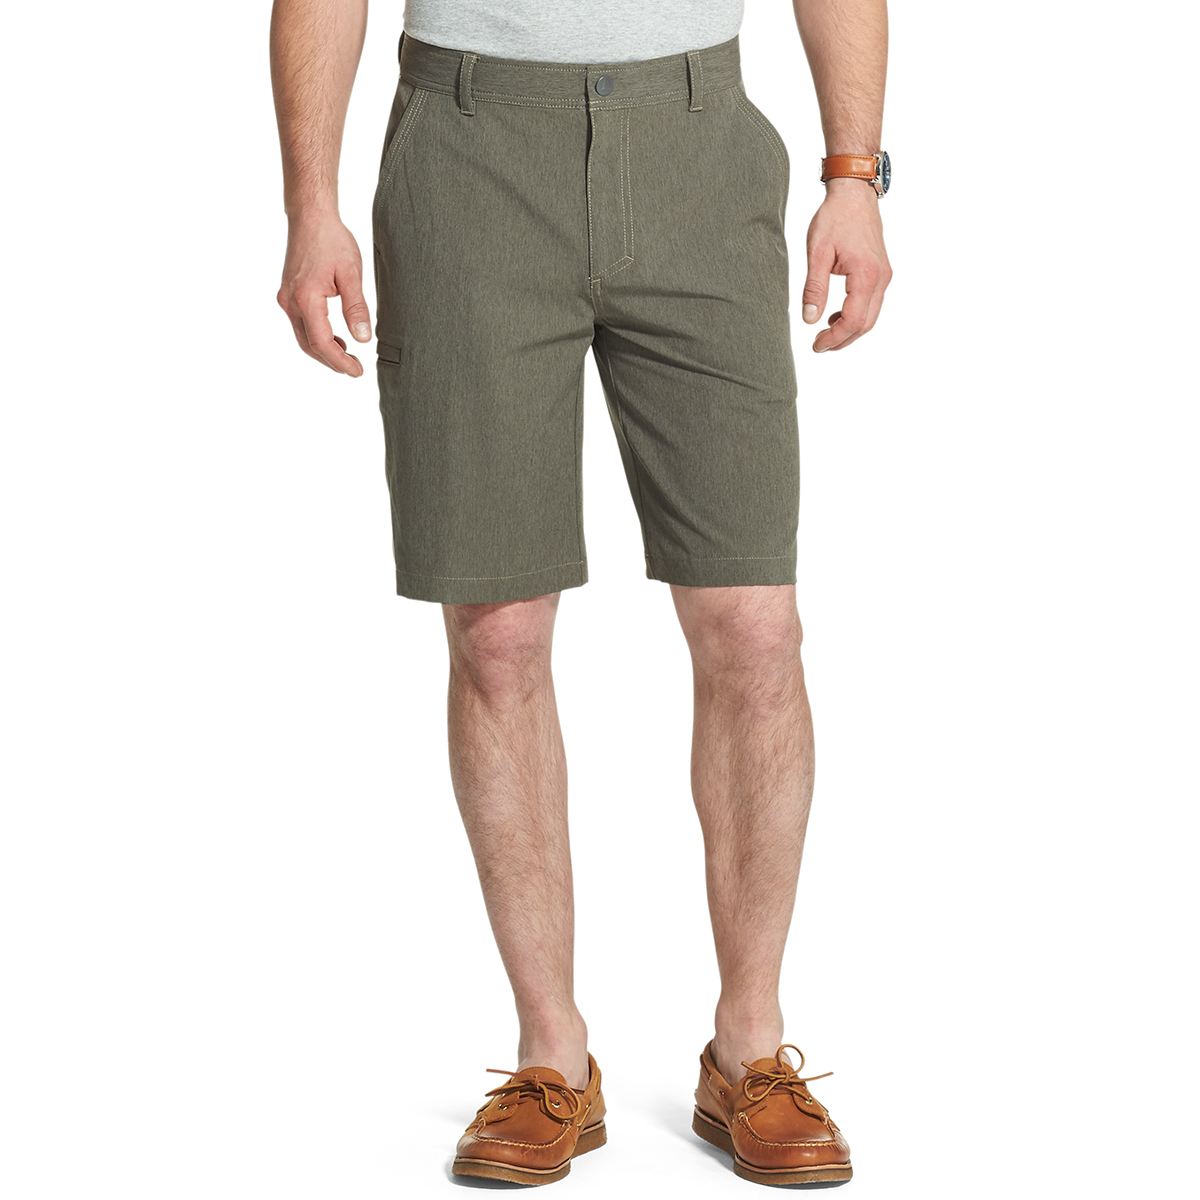 G.H. BASS Men's Bluewater Performance Shorts